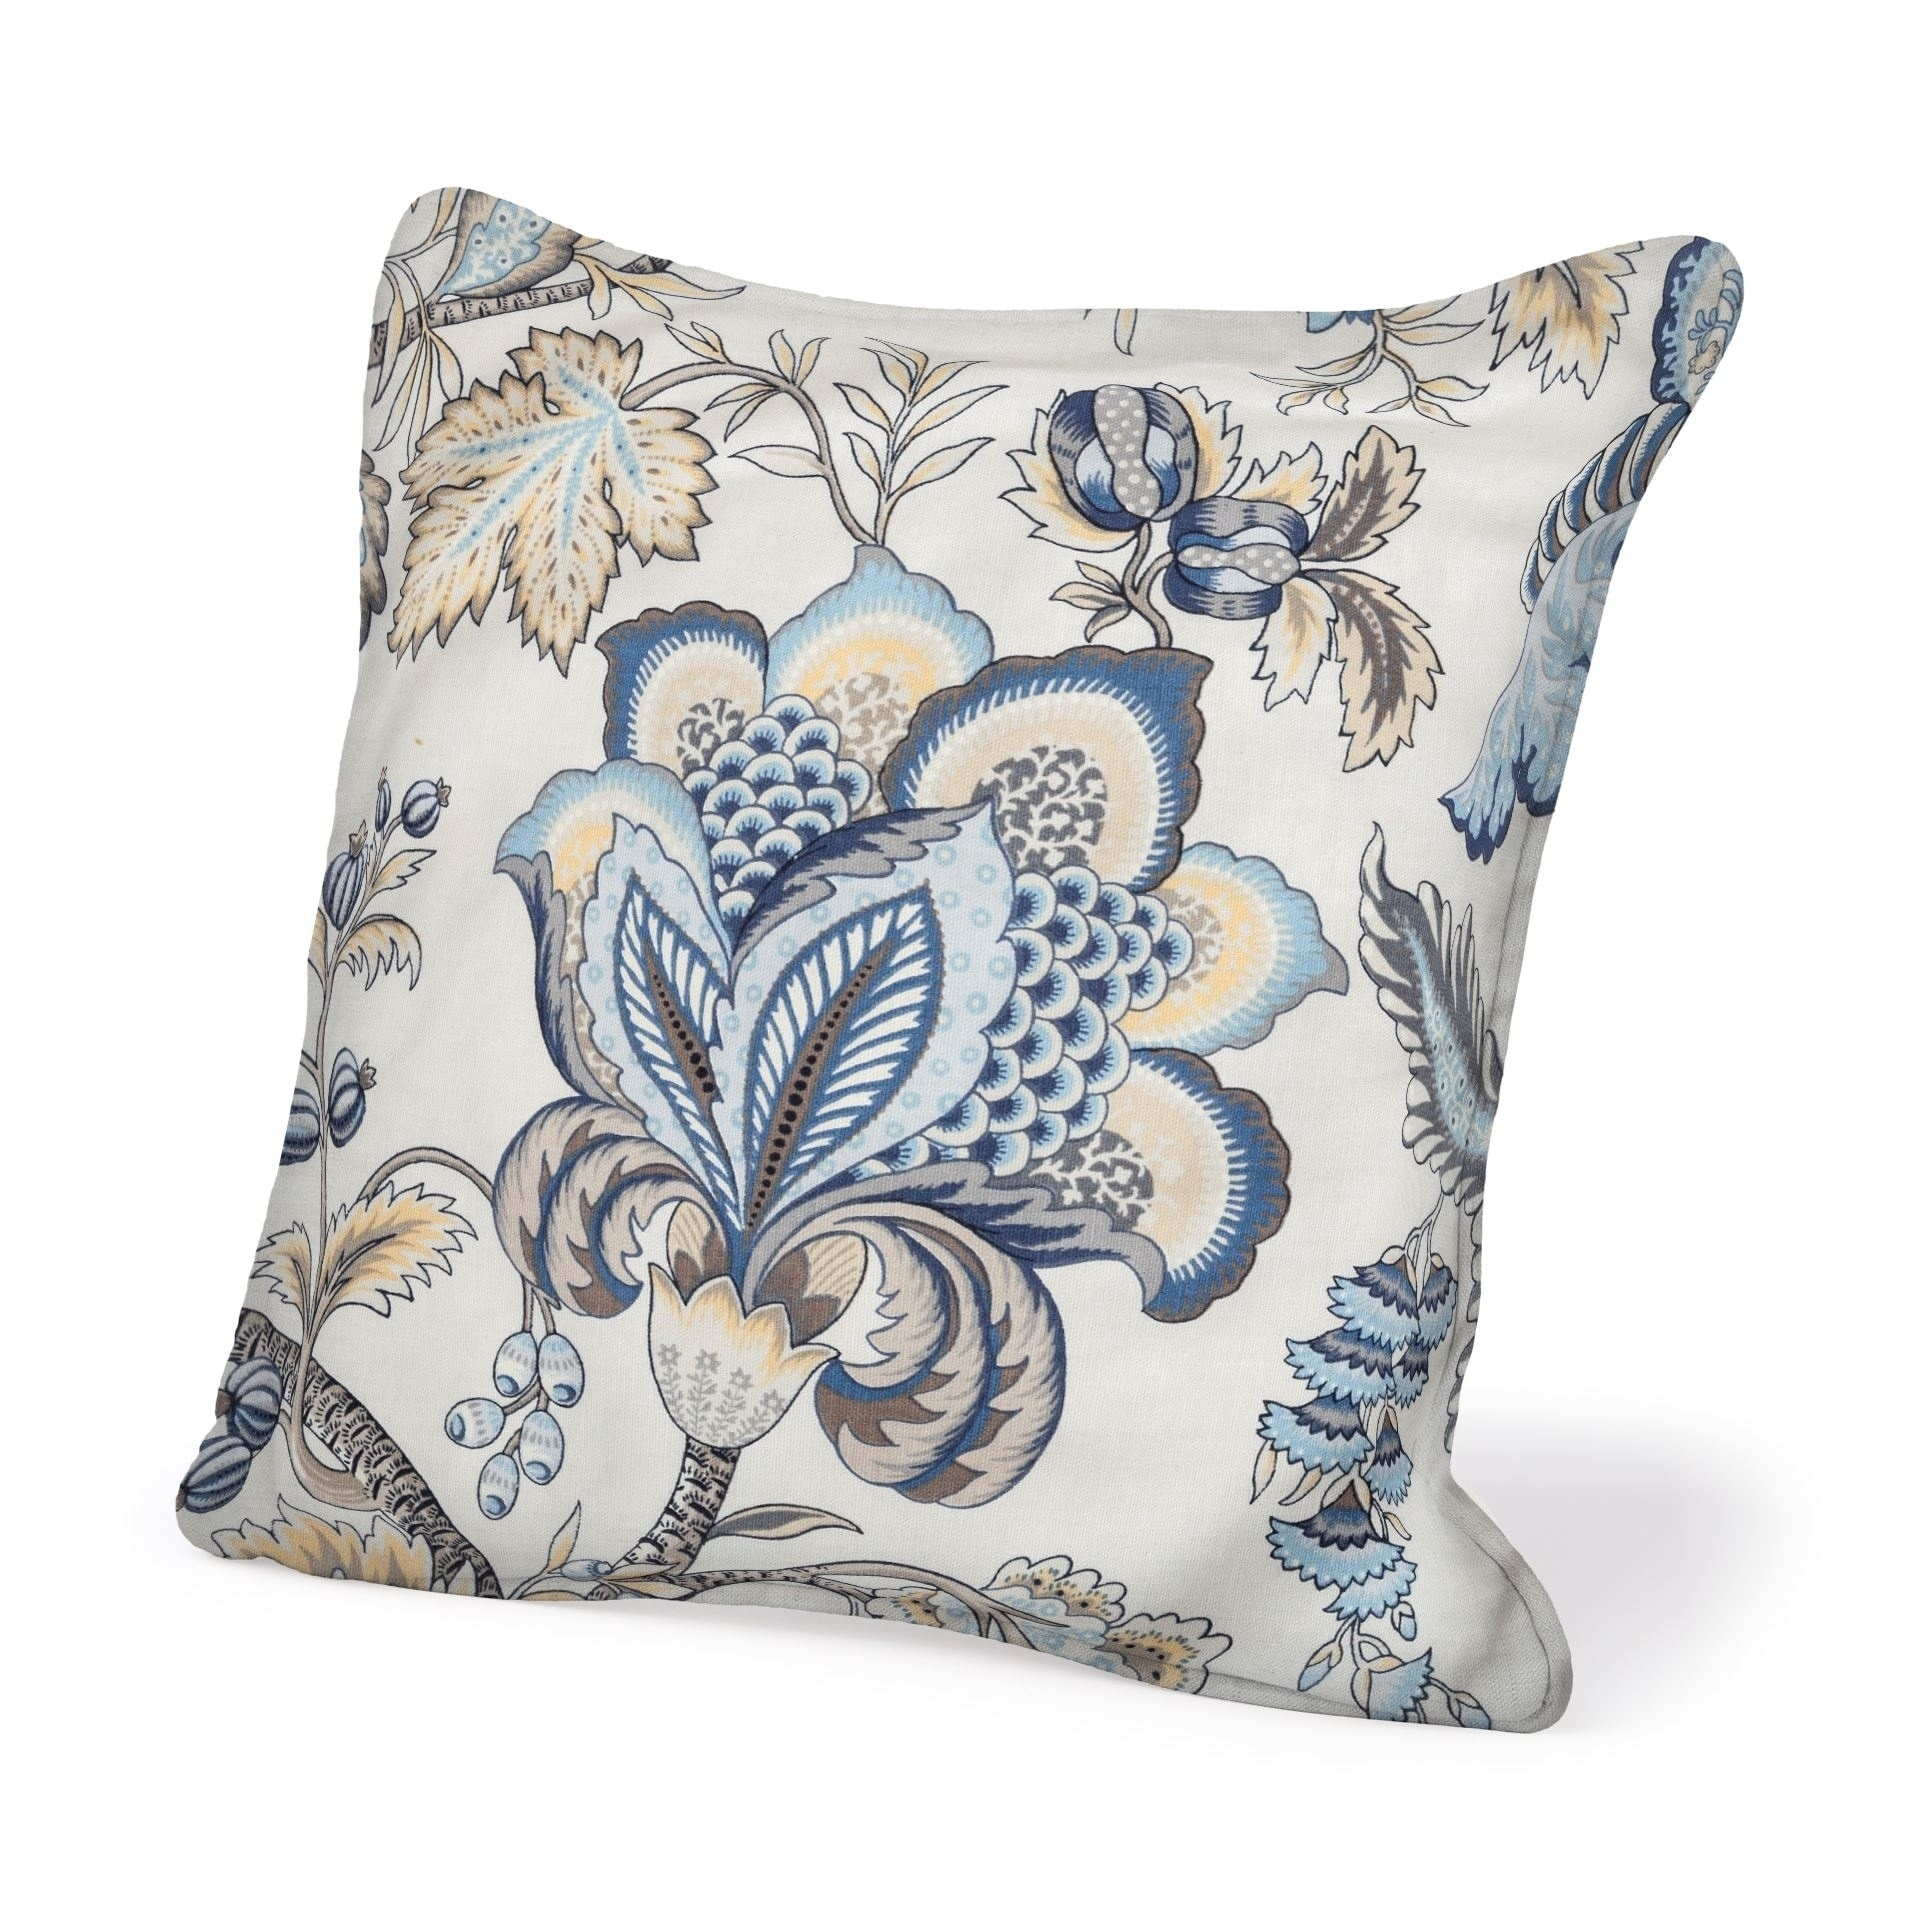 Mercana Gladious III 22 x 22 (cover only) Decorative Pillow